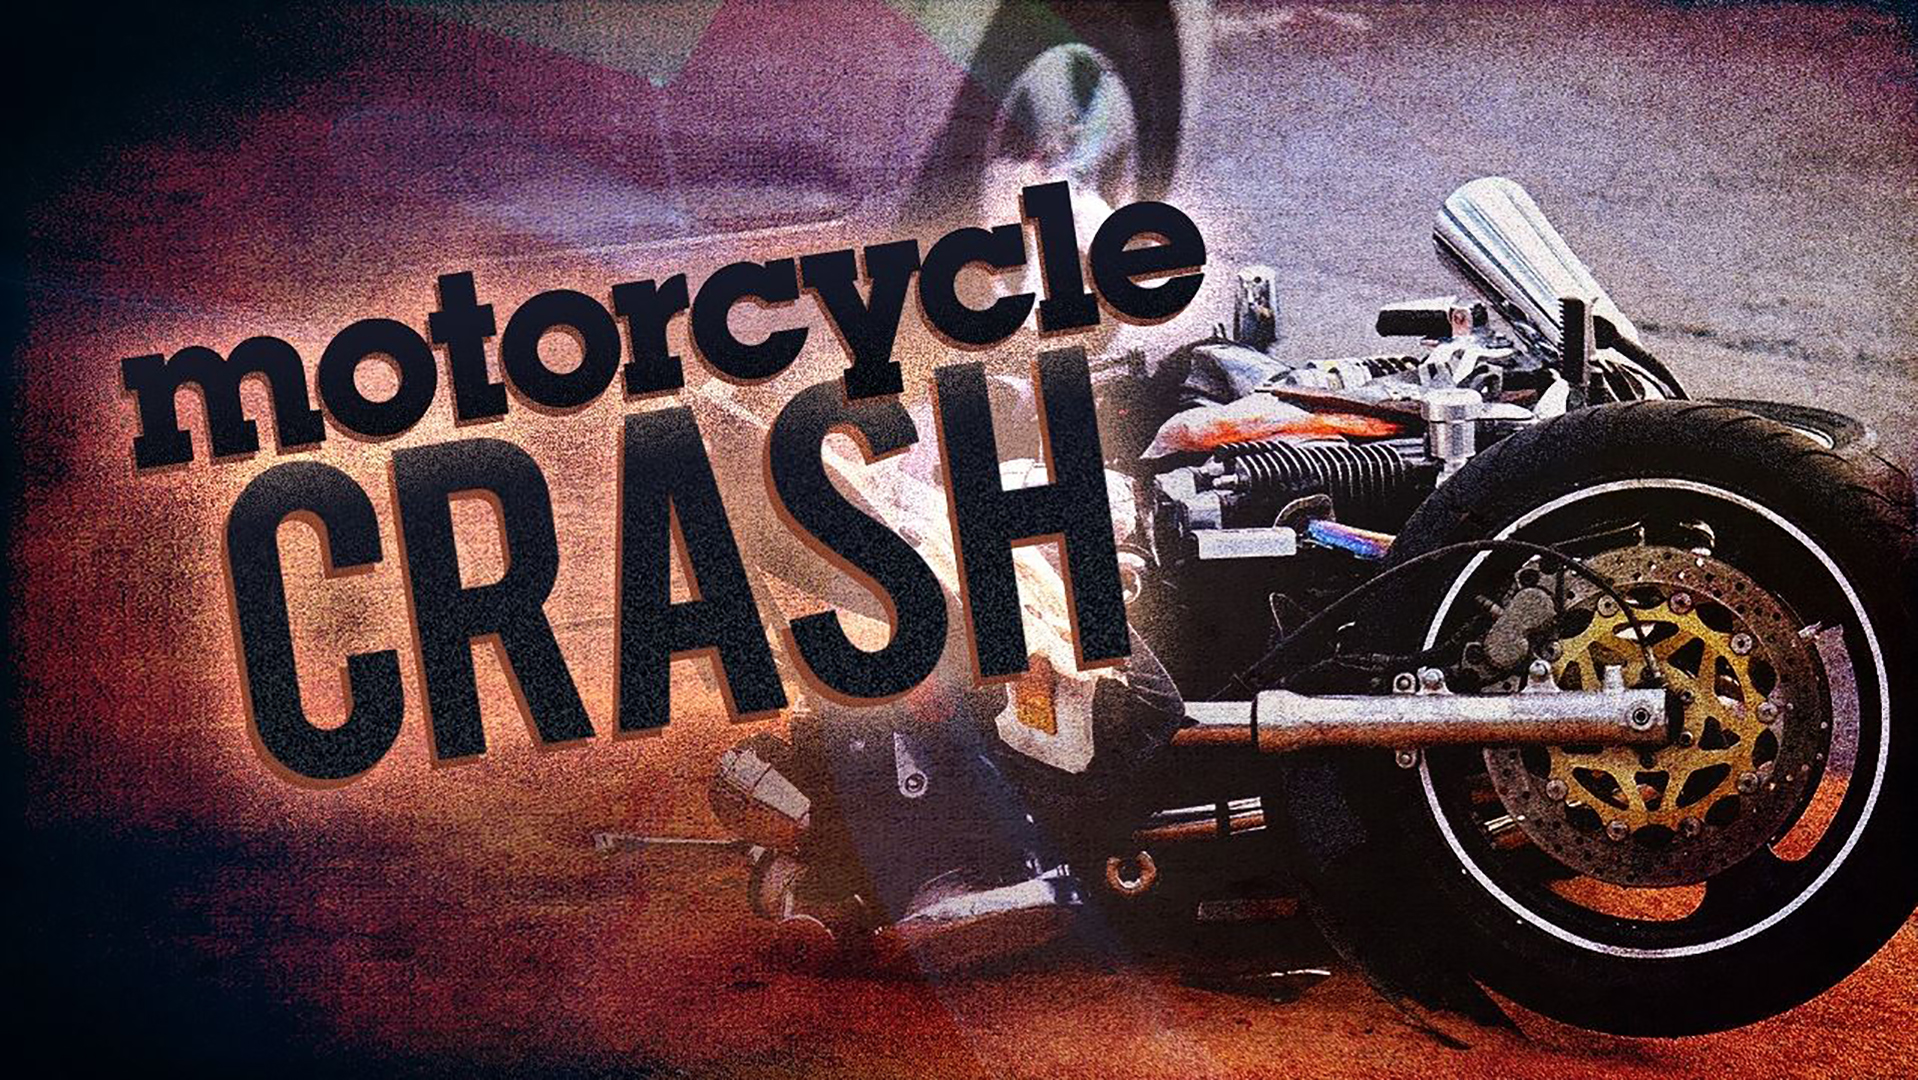 Motorcycle_Crash_Generic_1526836908742.jpg